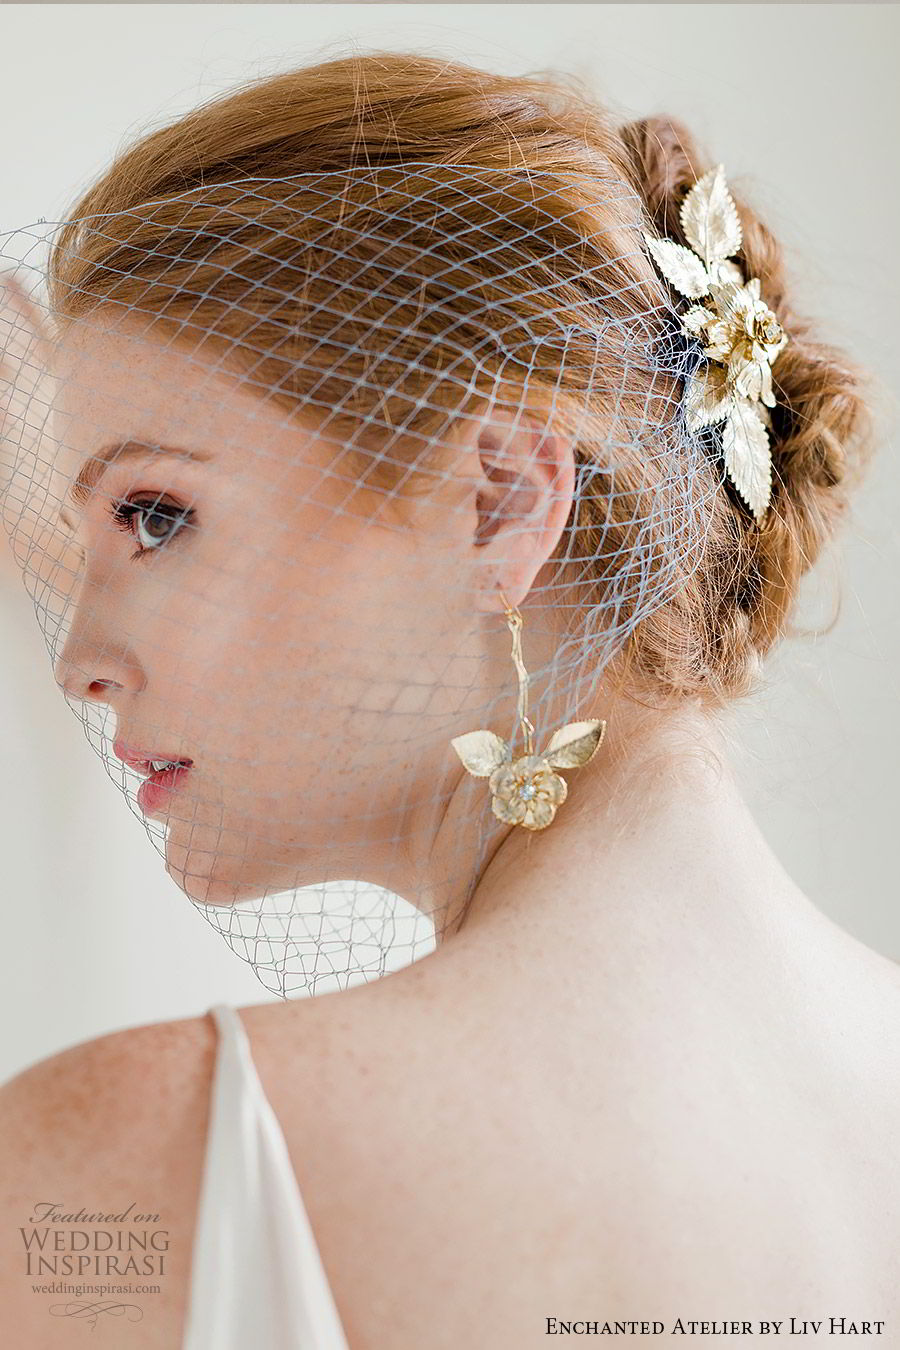 enchanted atelier liv hart fall 2019 accessories gold earrings birdcage veil (2) mv